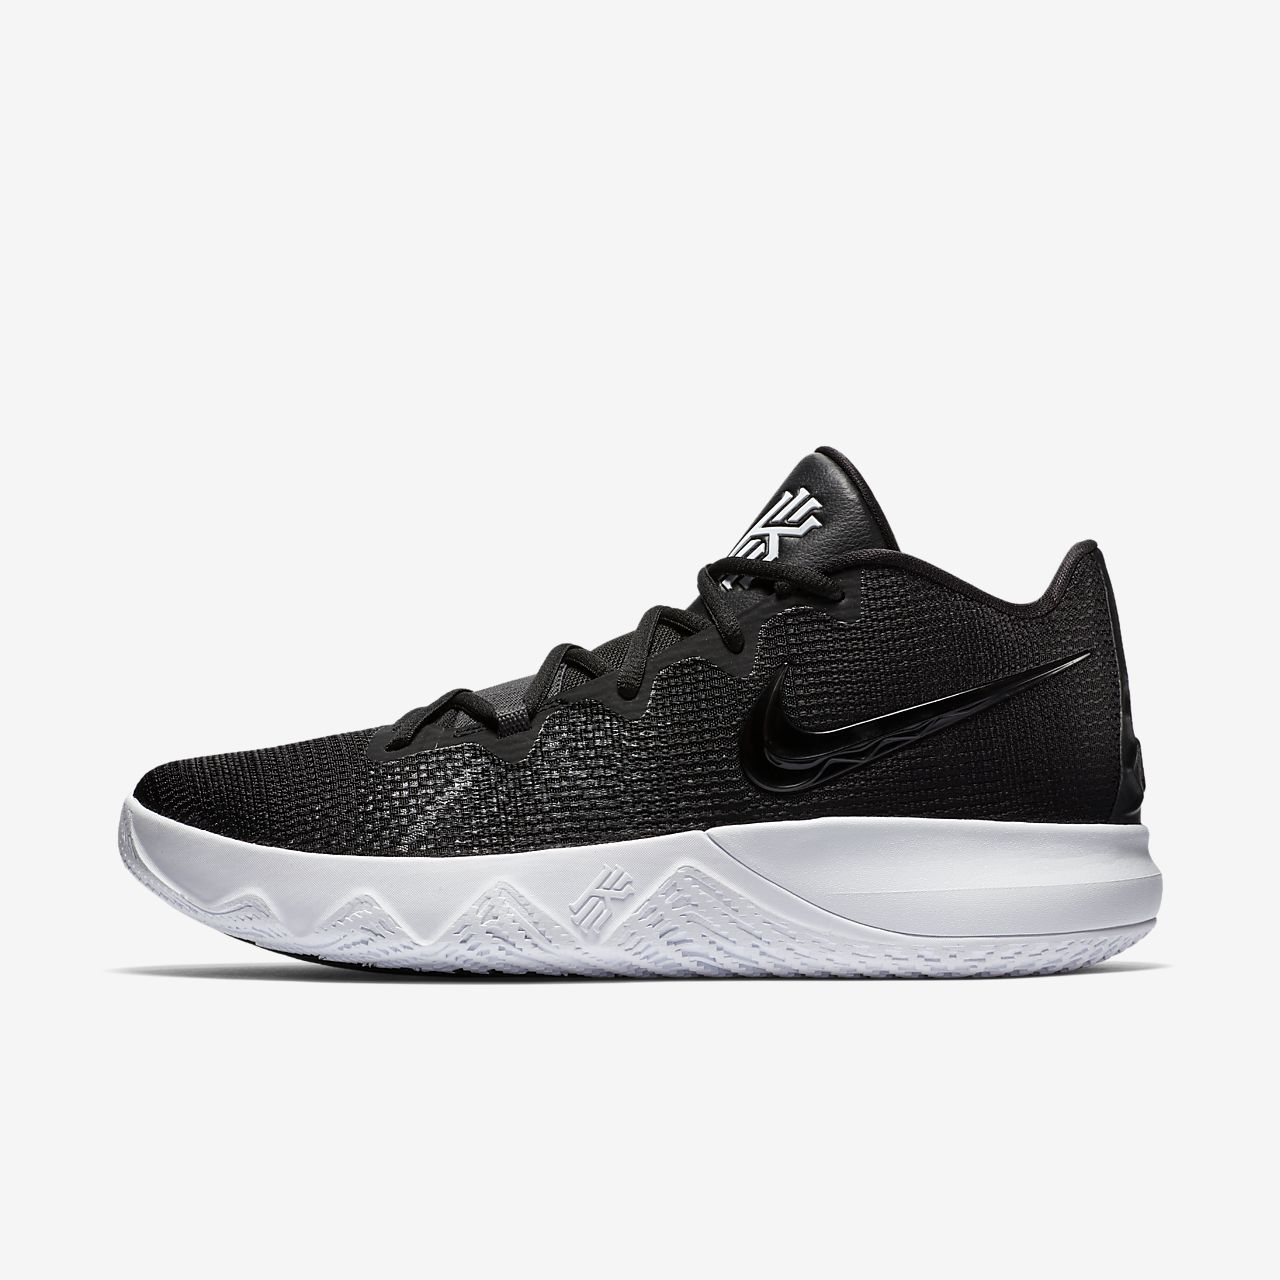 half off 70f7e 373bf Basketball Shoe. Kyrie Flytrap